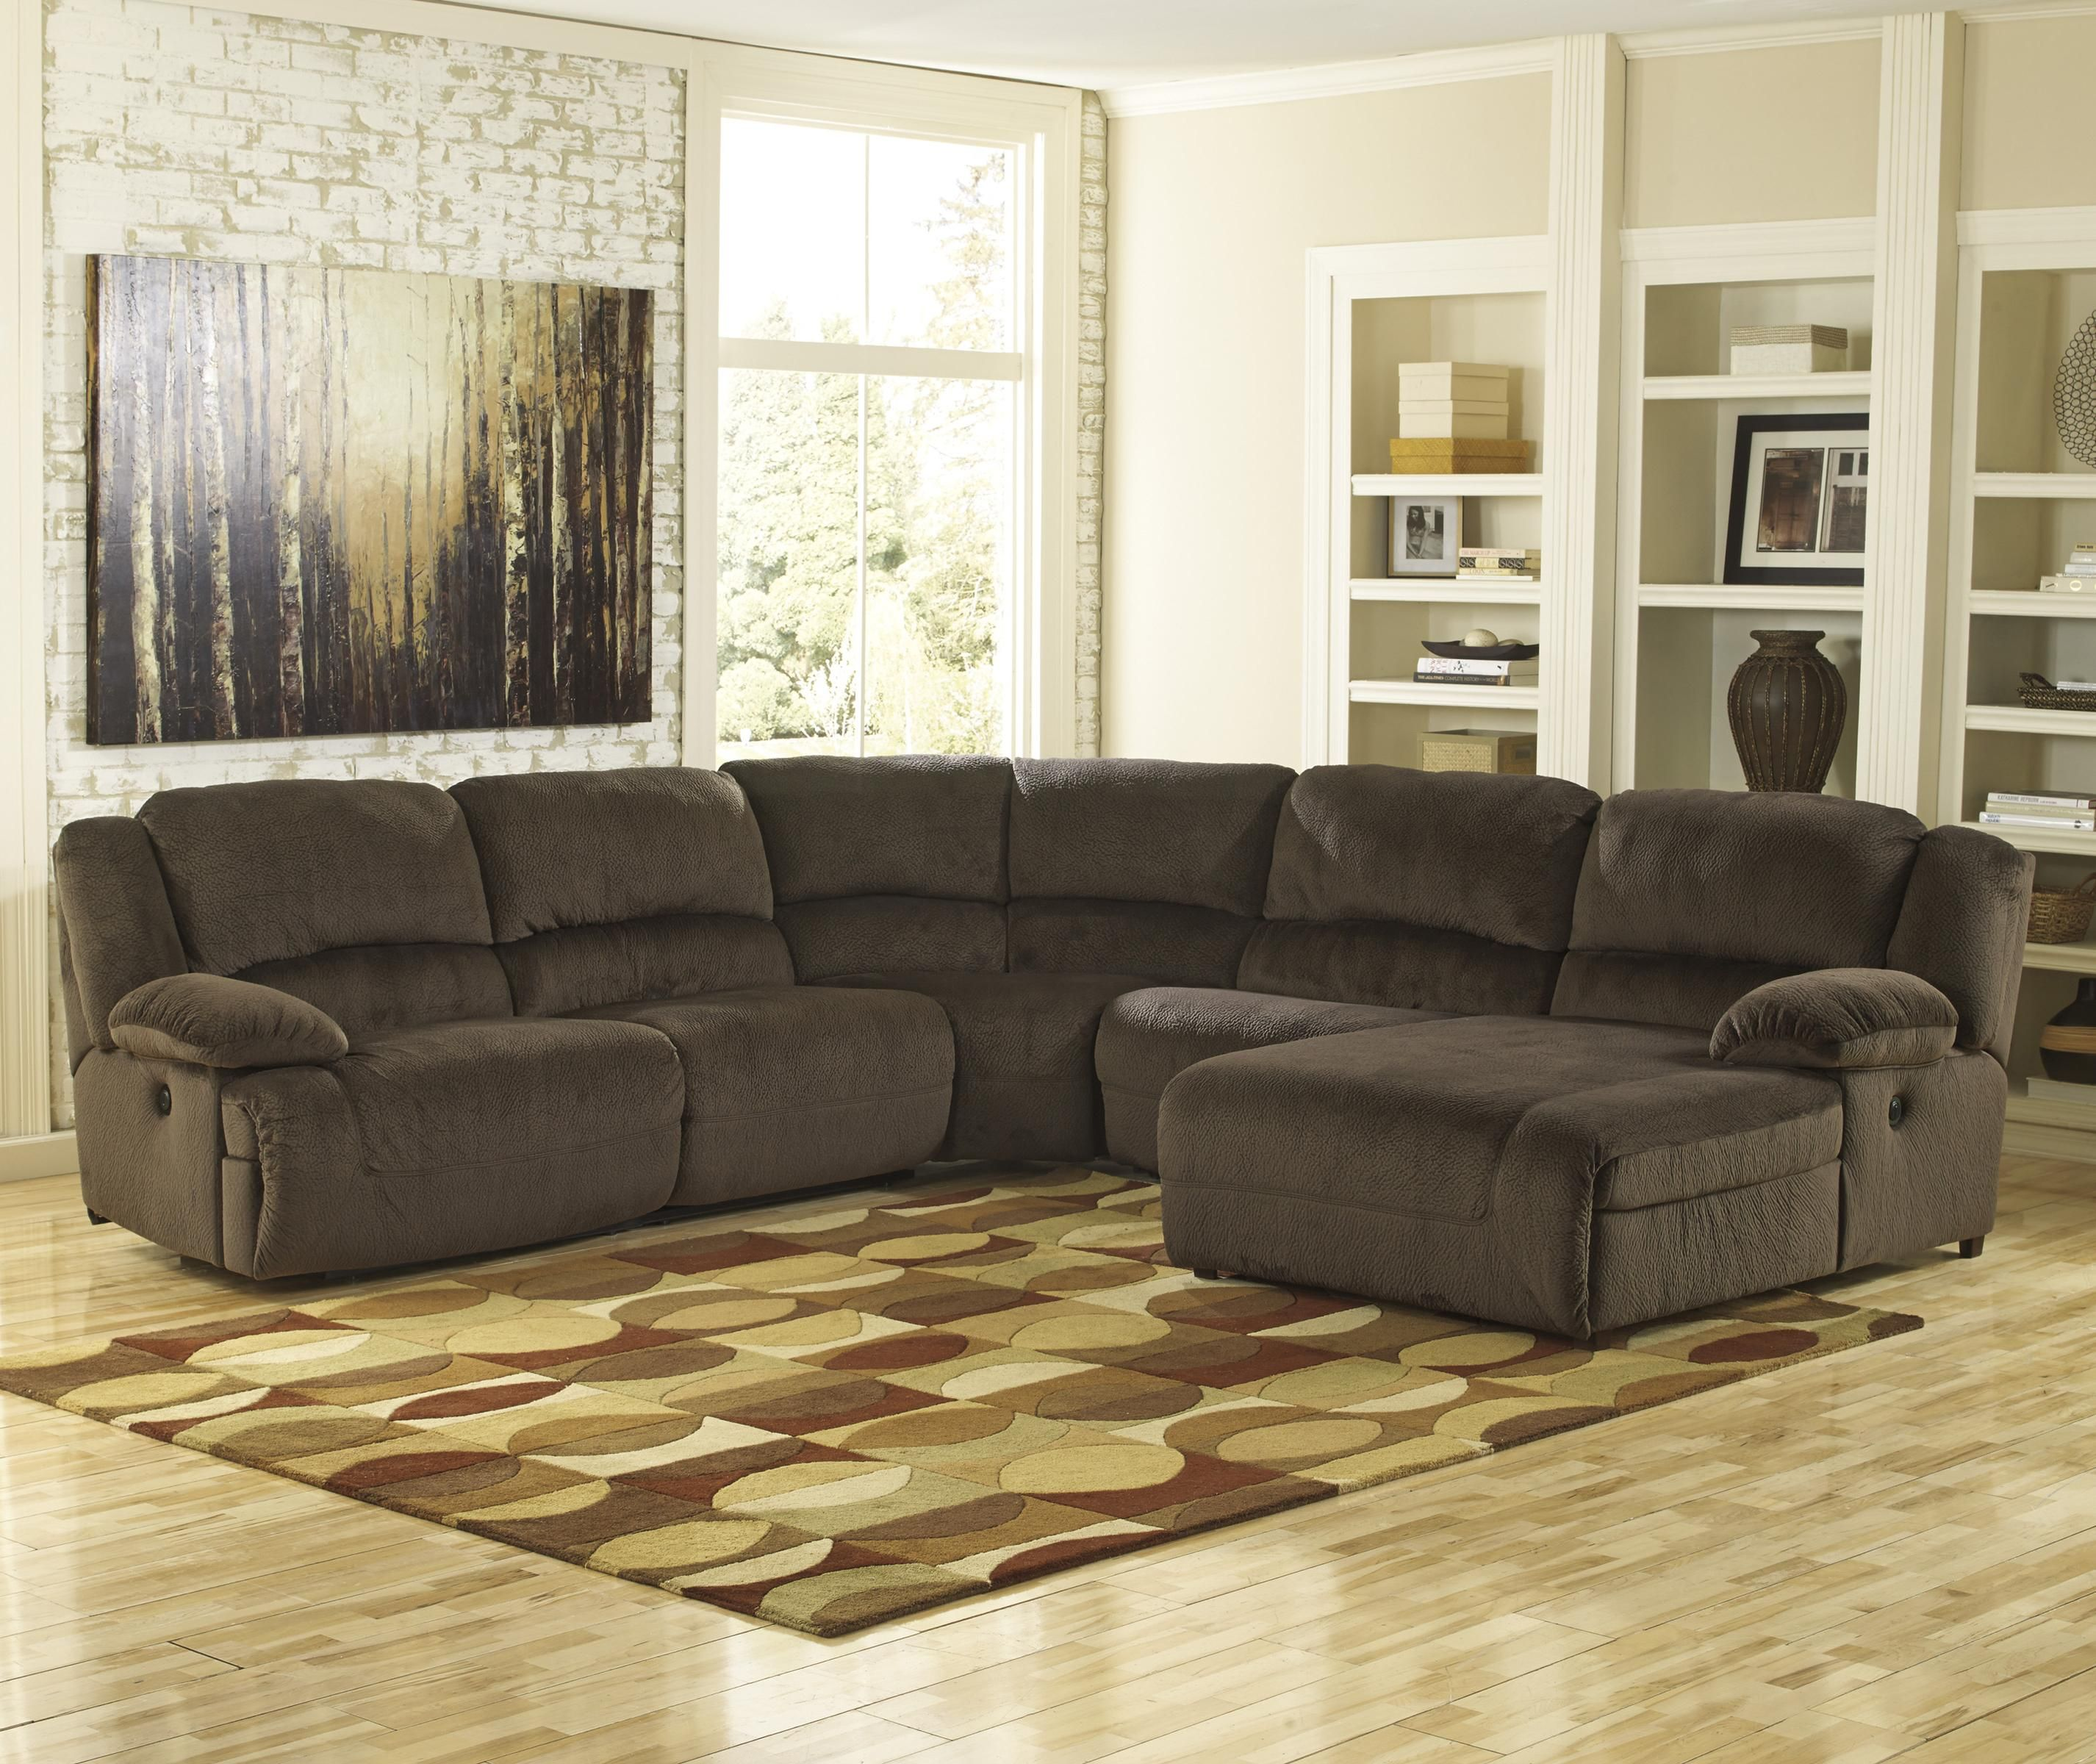 Toletta Chocolate Power Reclining Sectional with Chaise by